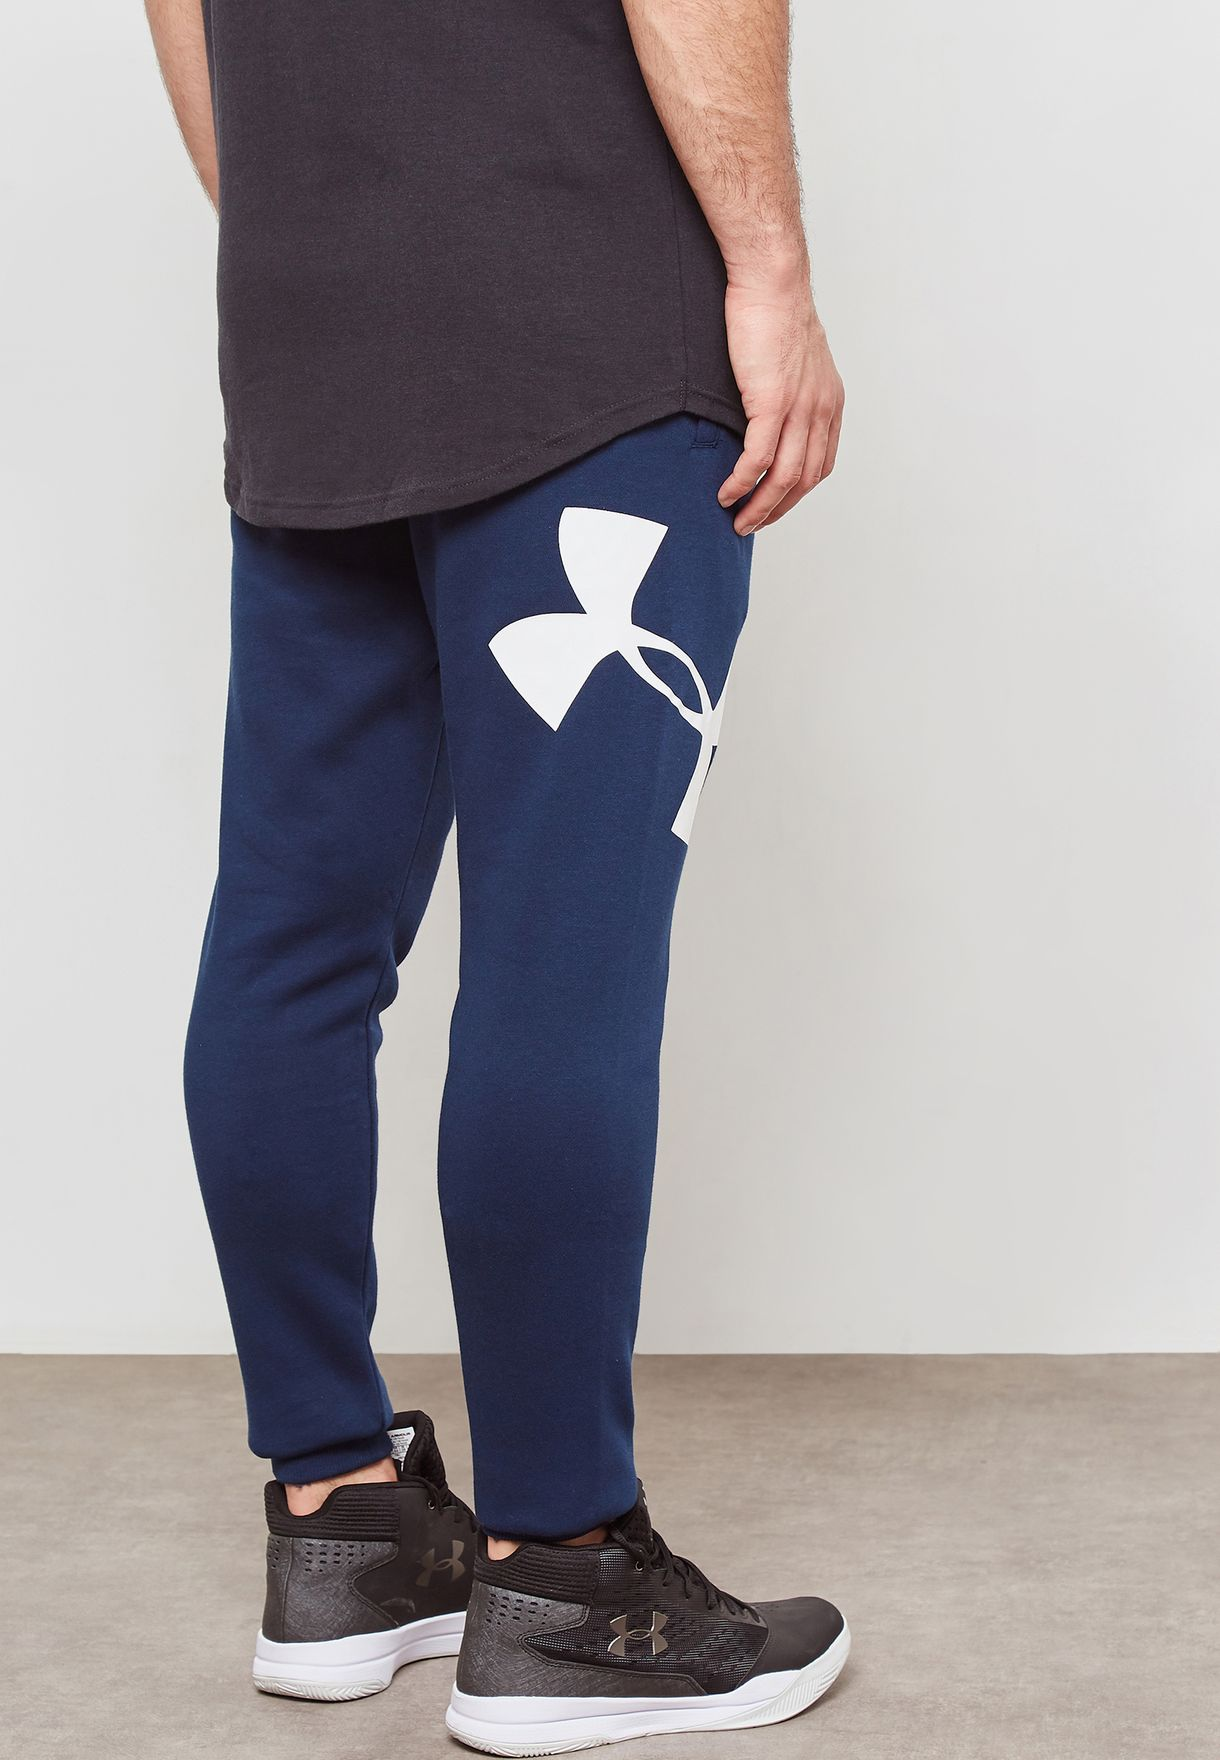 924cff402f7 Shop Under Armour navy Rival Fleece Sweatpants 1329746-408 for ...